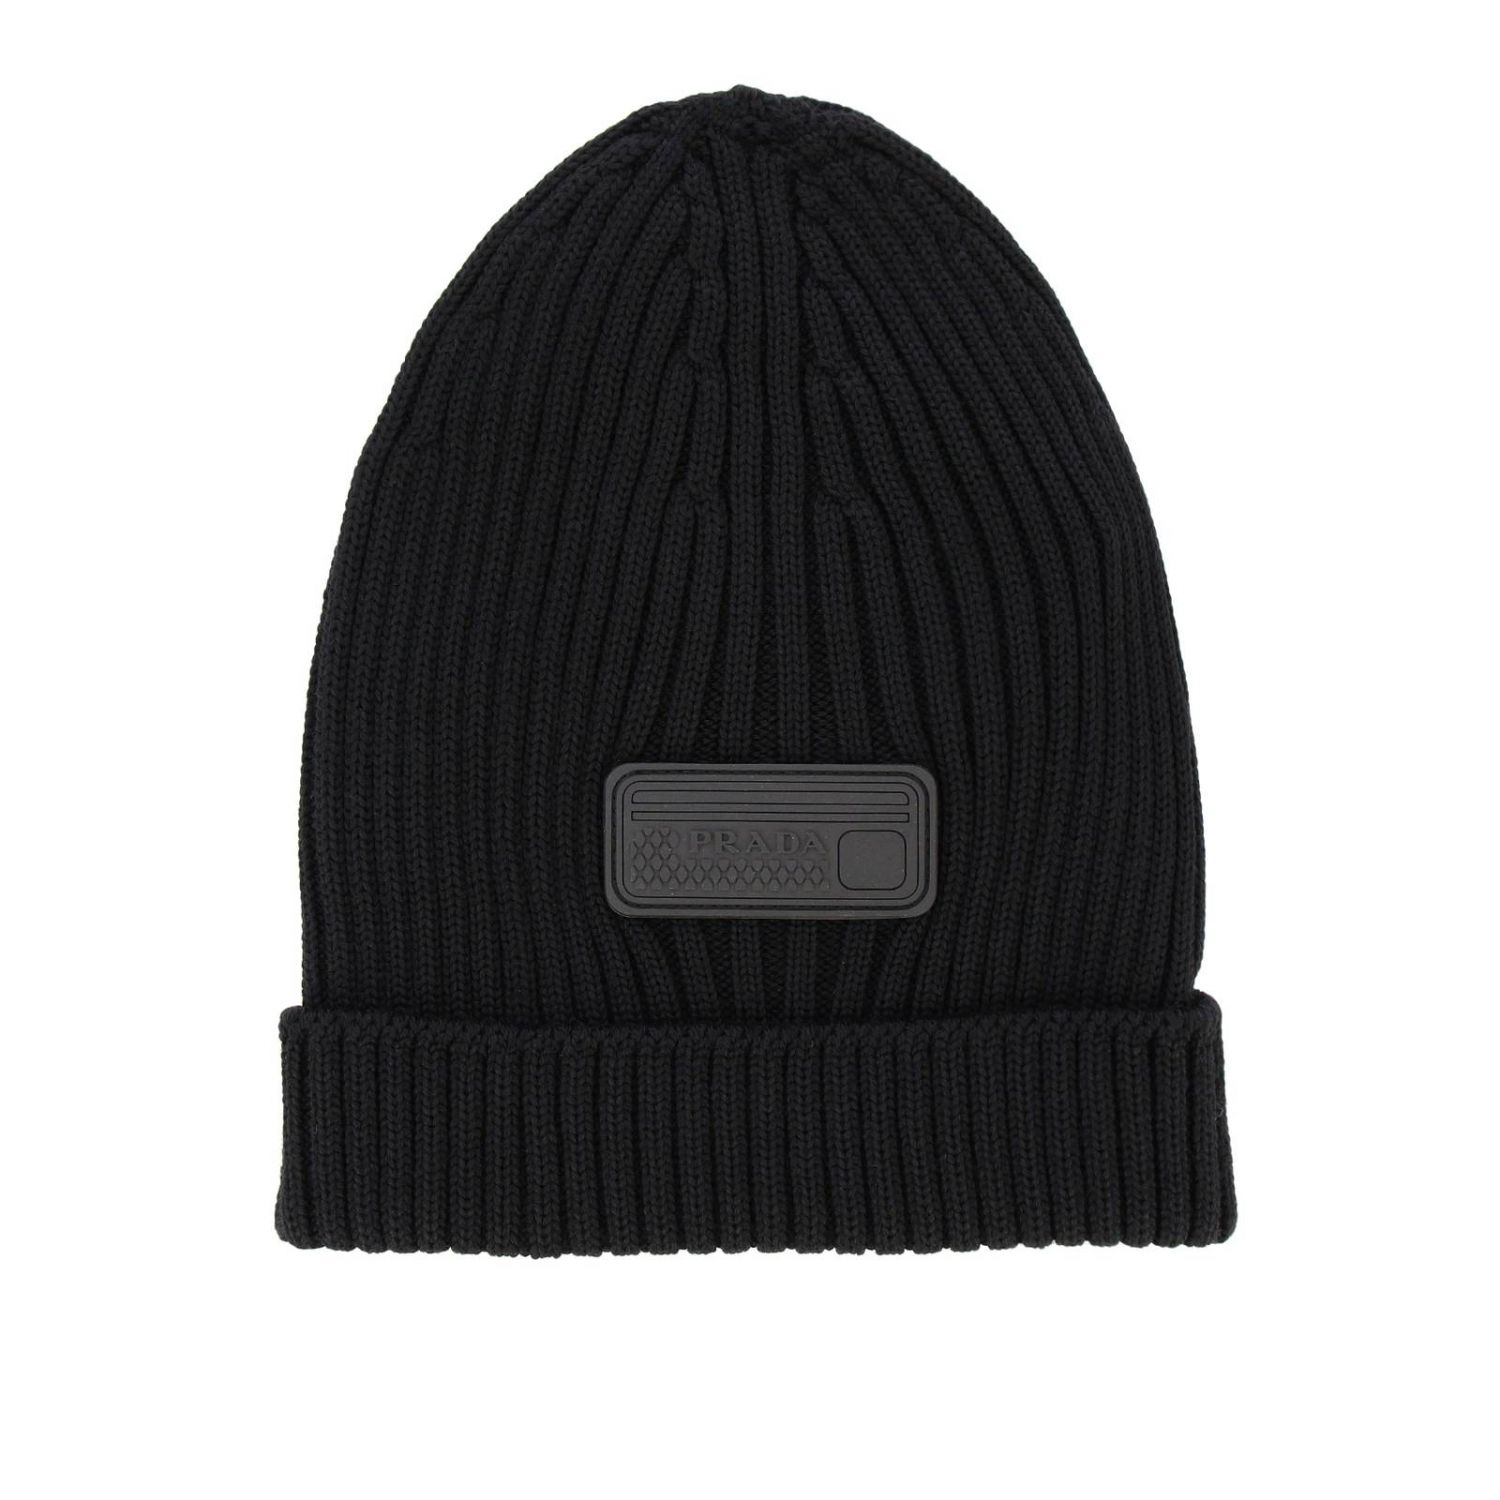 Prada hat in ribbed wool with rubber logo black 1